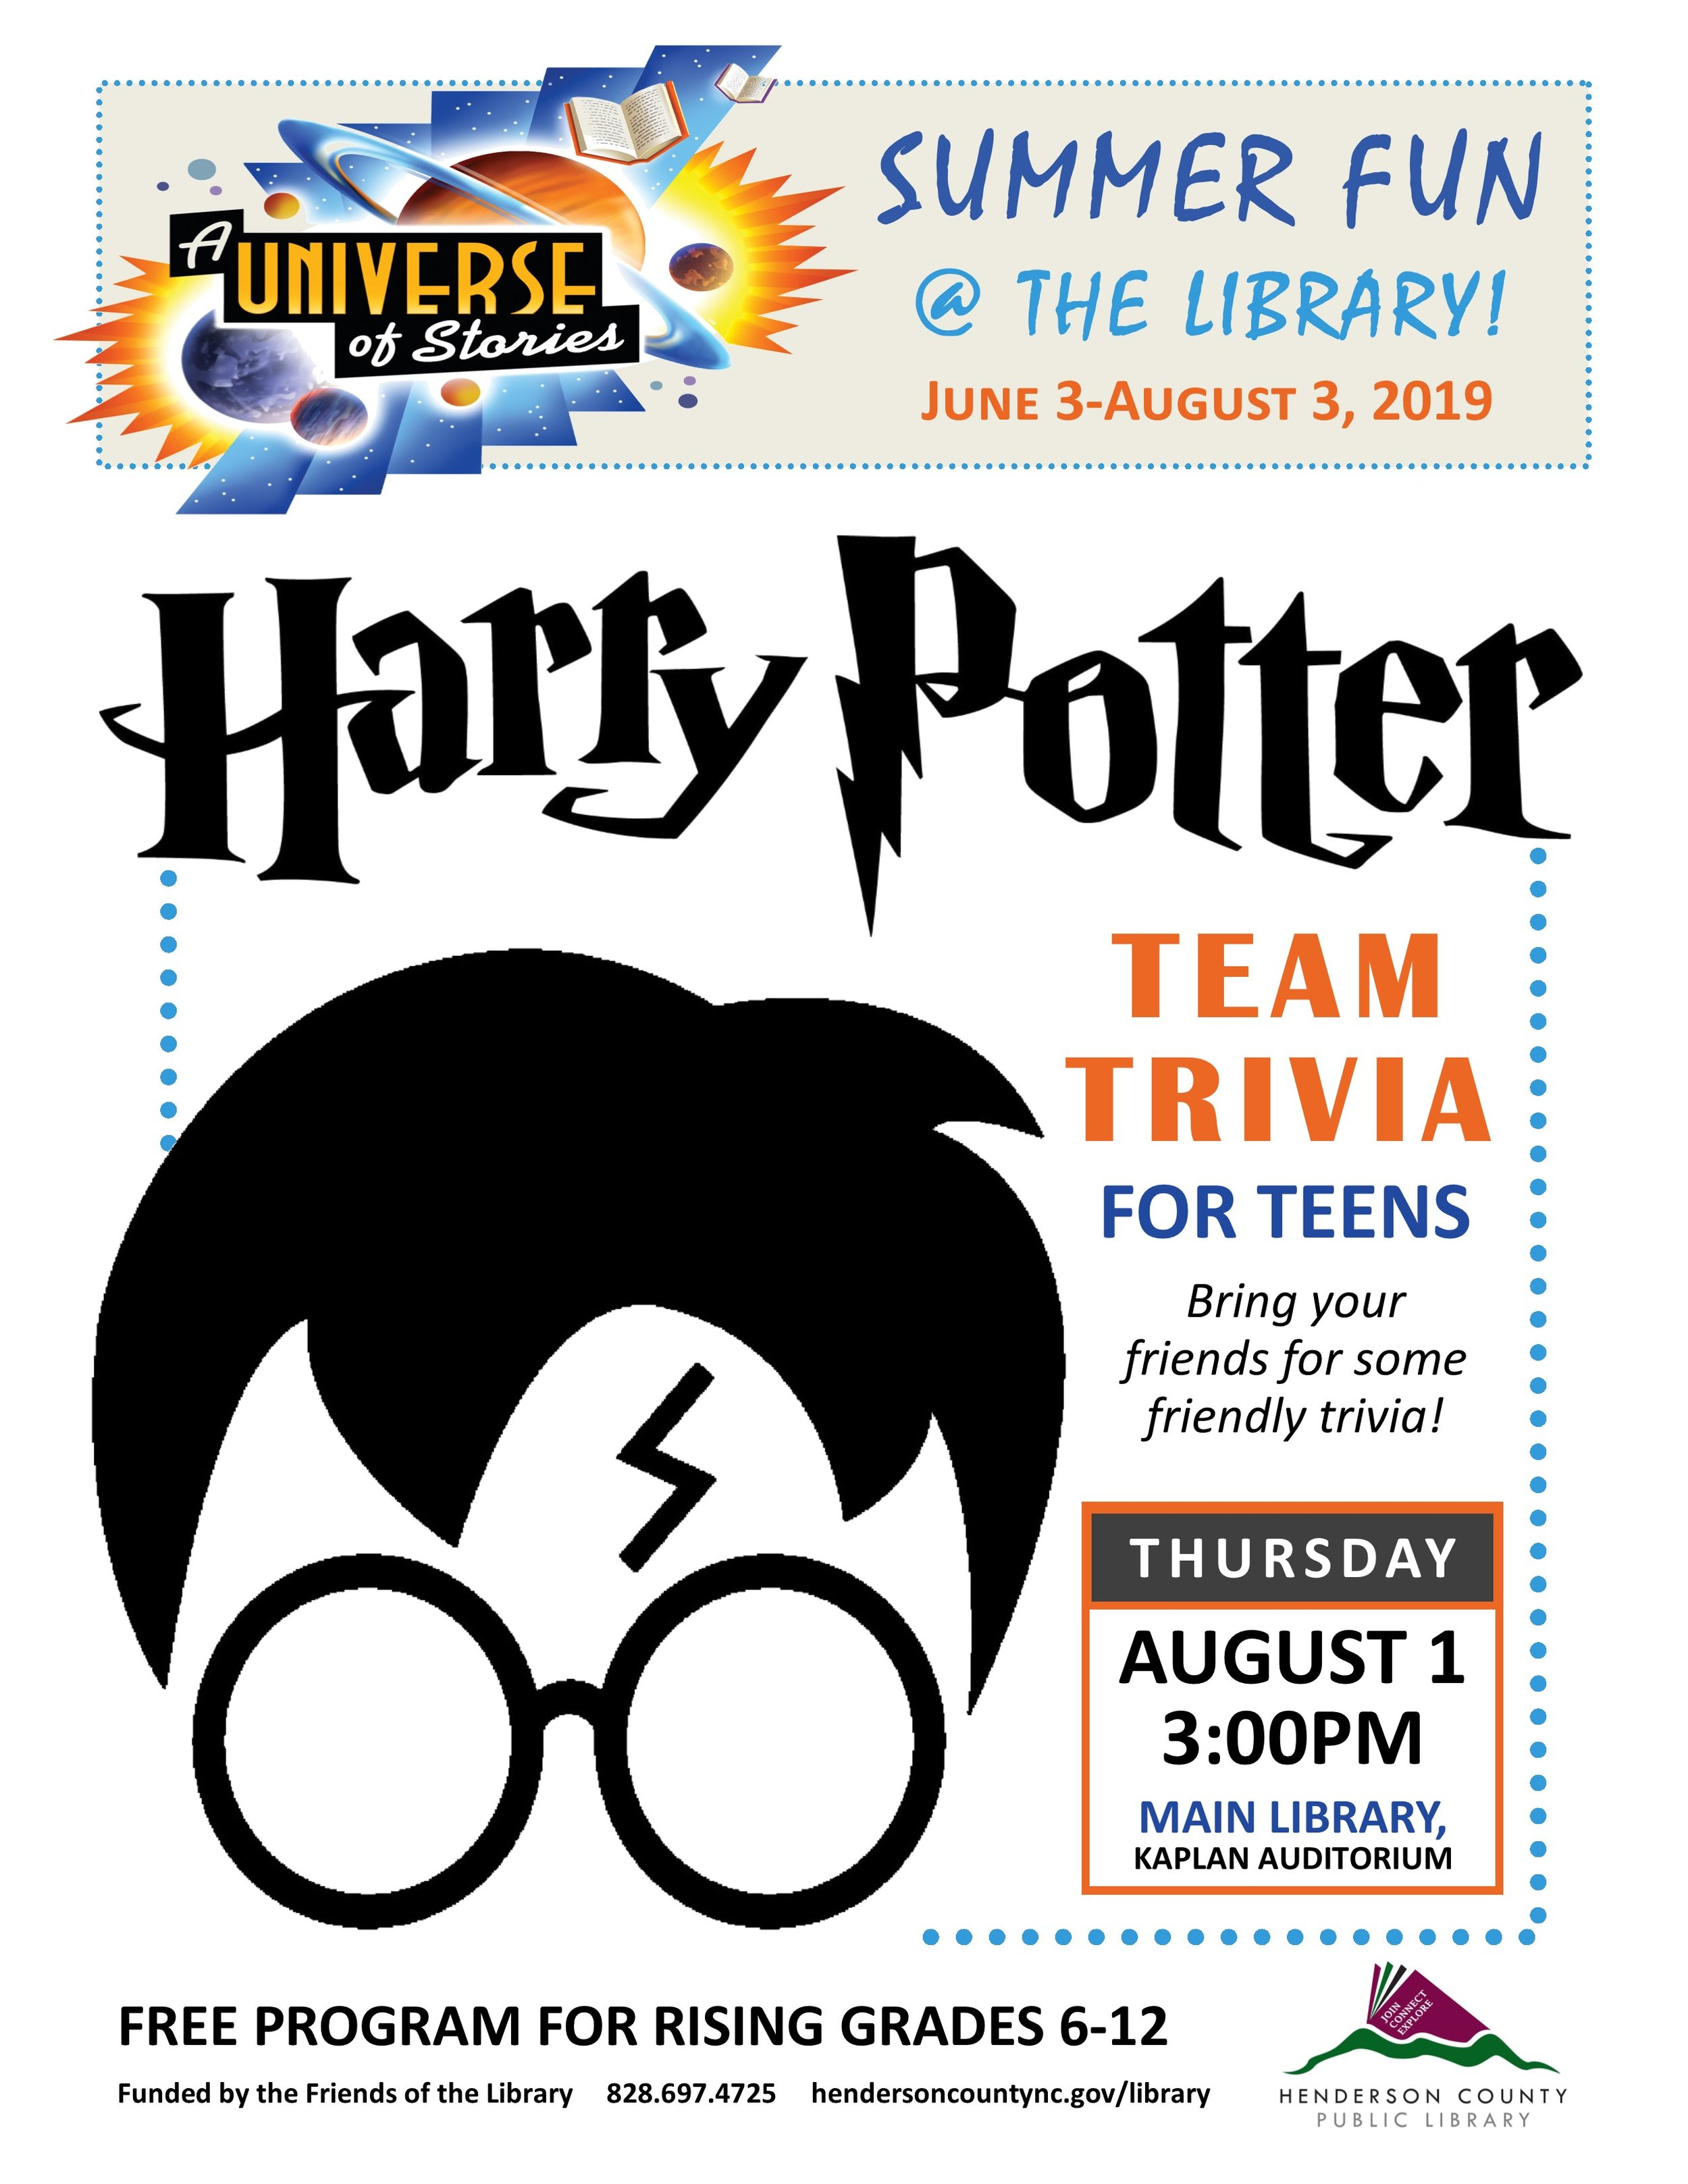 Harry Potter Team Trivia for Teens.jpg